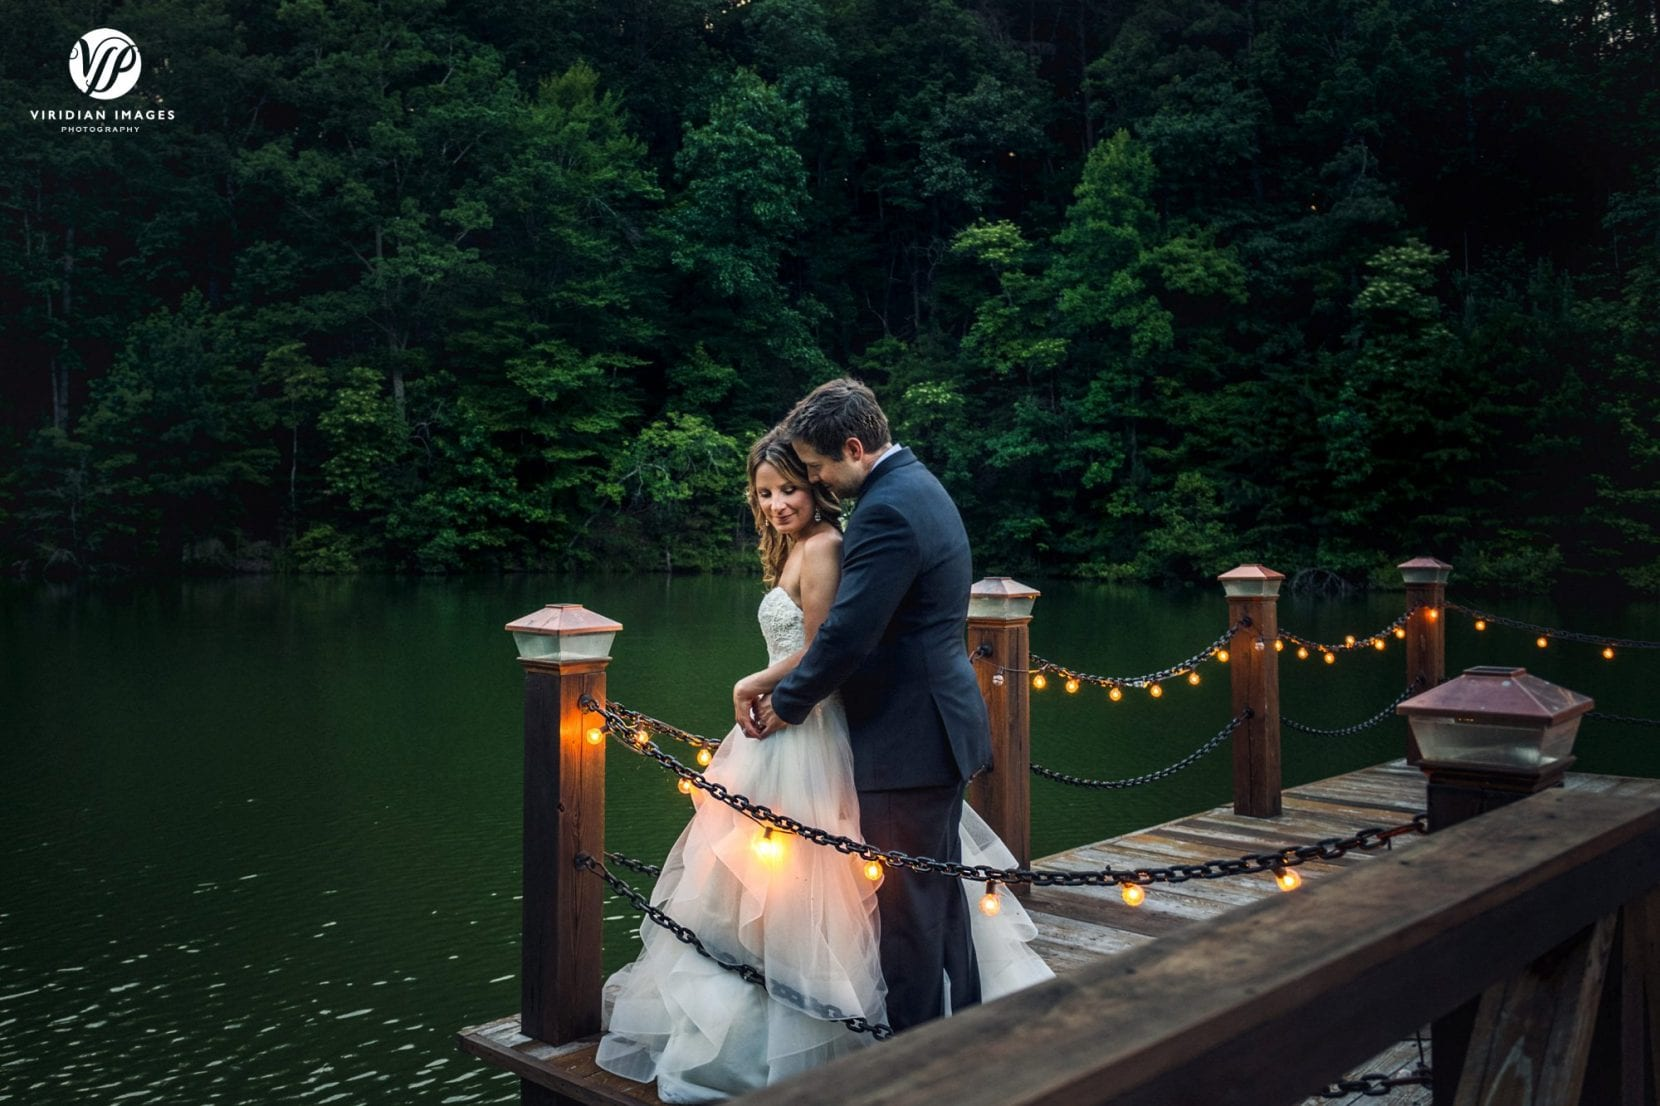 romantic portrait of bride and groom on dock at dusk